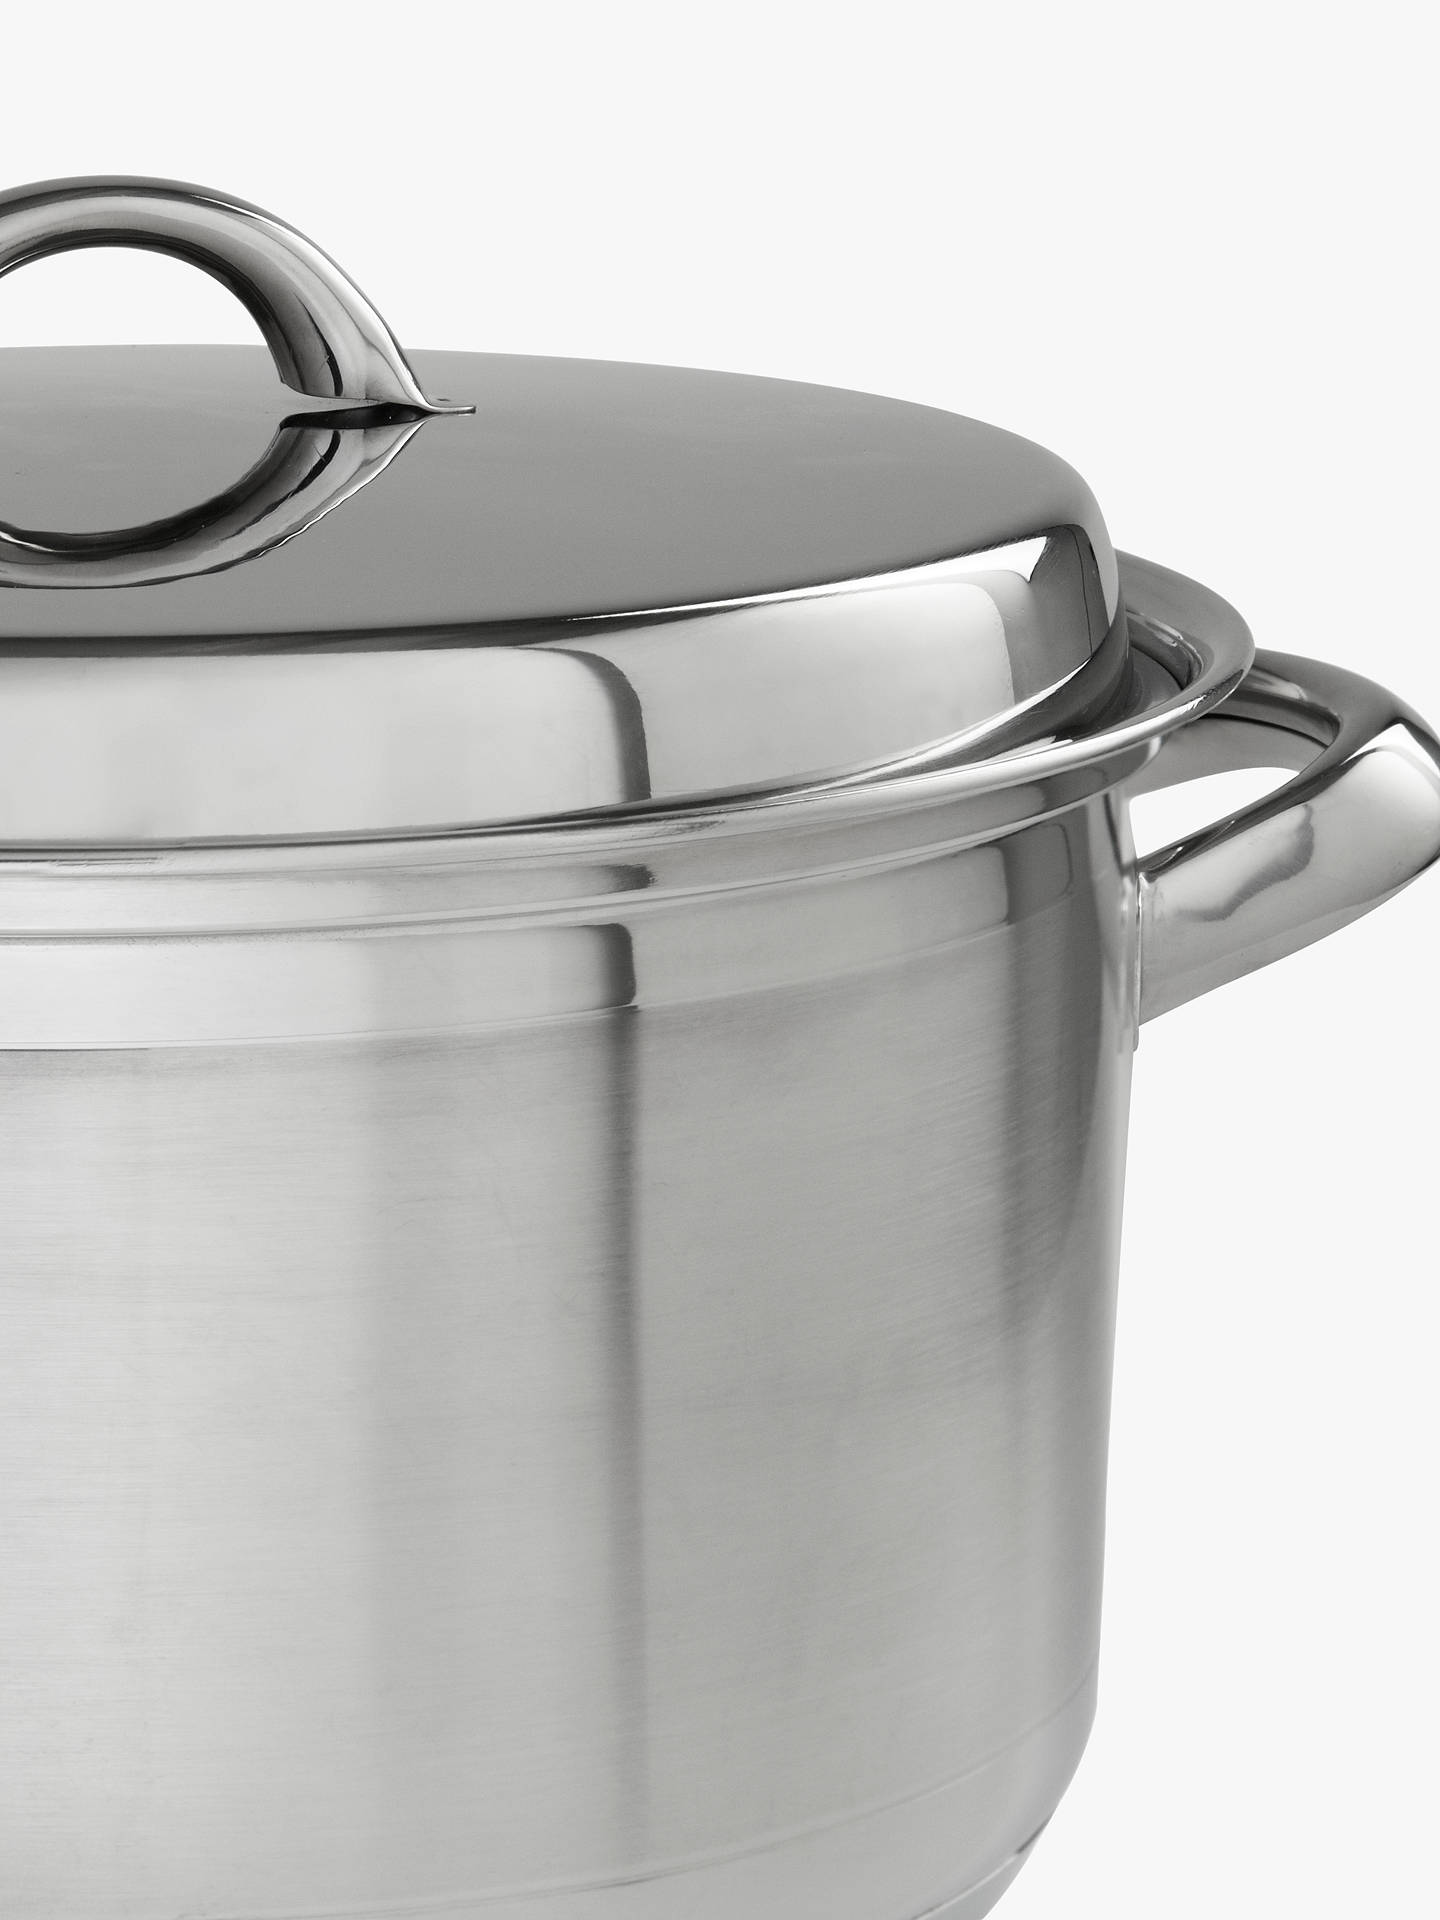 BuyJohn Lewis & Partners Classic Lidded Casserole, 24cm, 5L Online at johnlewis.com